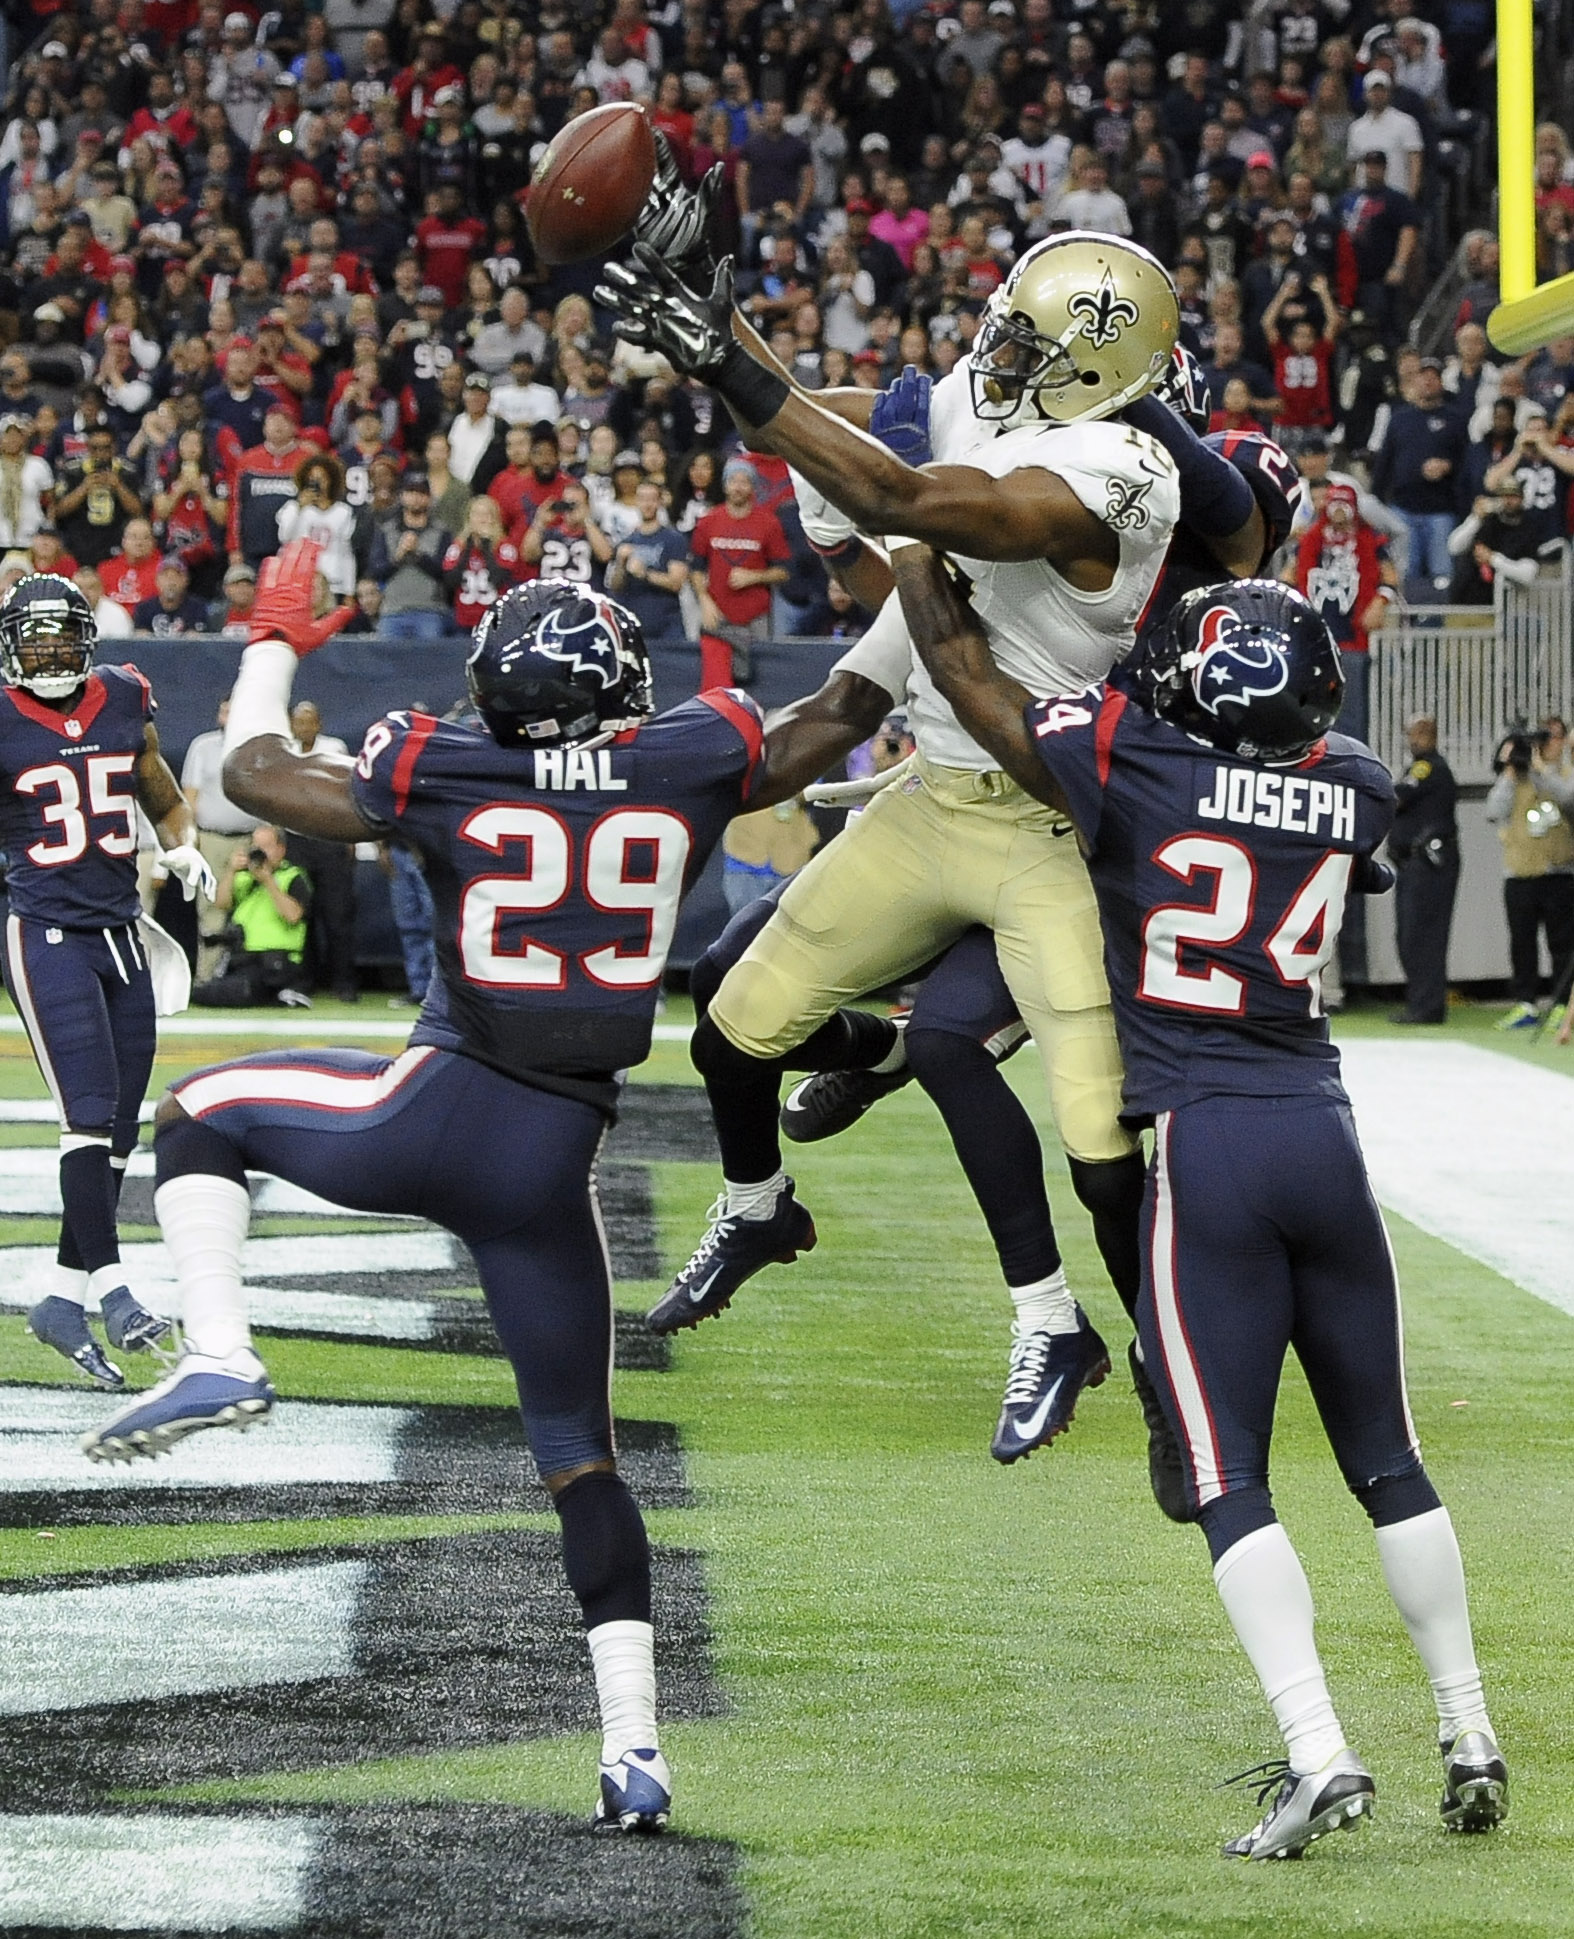 Houston Texans' Andre Hal (29) and Johnathan Joseph (24) help break up a pass intended for New Orleans Saints' Brandin Cooks (10) in the end zone during the fourth quarter of an NFL football game, Sunday, Nov. 29, 2015, in Houston. The Texans won 24-6. (A